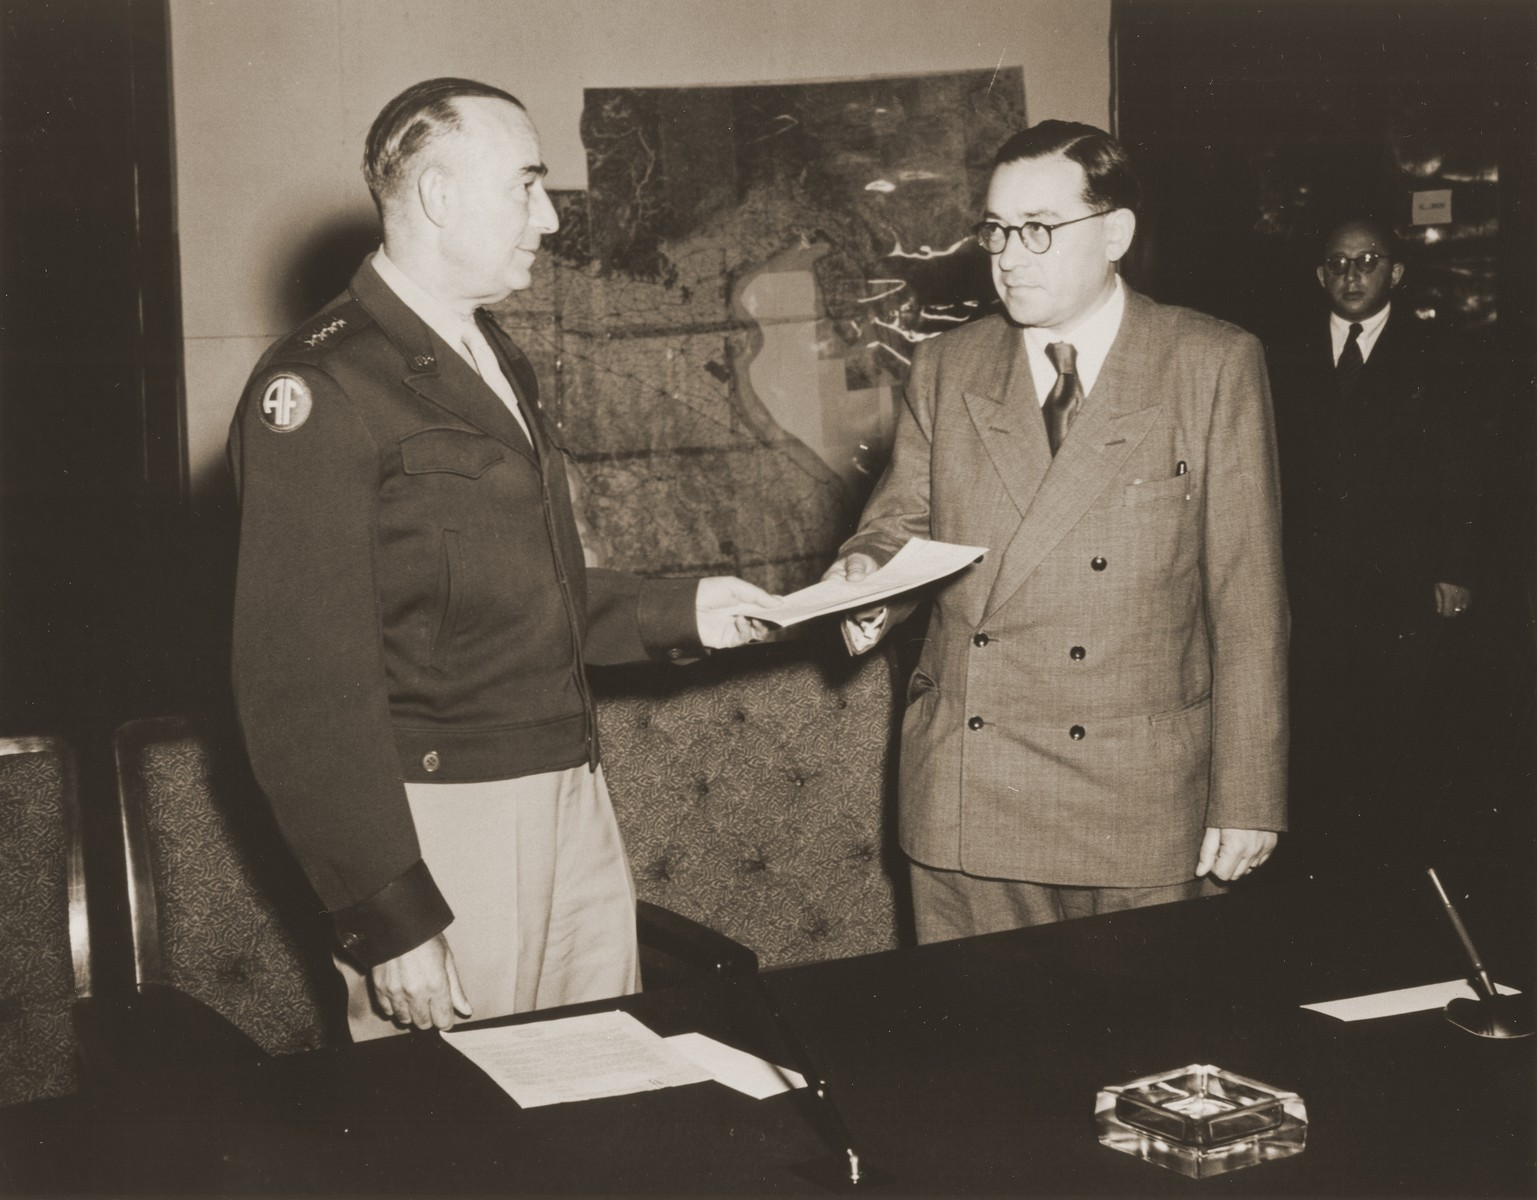 General Joseph McNarney, Commander of the American army of occupation in Germany, hands Dr. Samuel Gringauz, Chairman of the Central Committee of Liberated Jews in the U.S. Zone of Germany, the signed Charter of Recognition, whereby the American army acknowledged the Central Committee as the official representative body of Jewish DPs in the American Zone of Germany.  Pictured at the far right is Boris Pliskin.